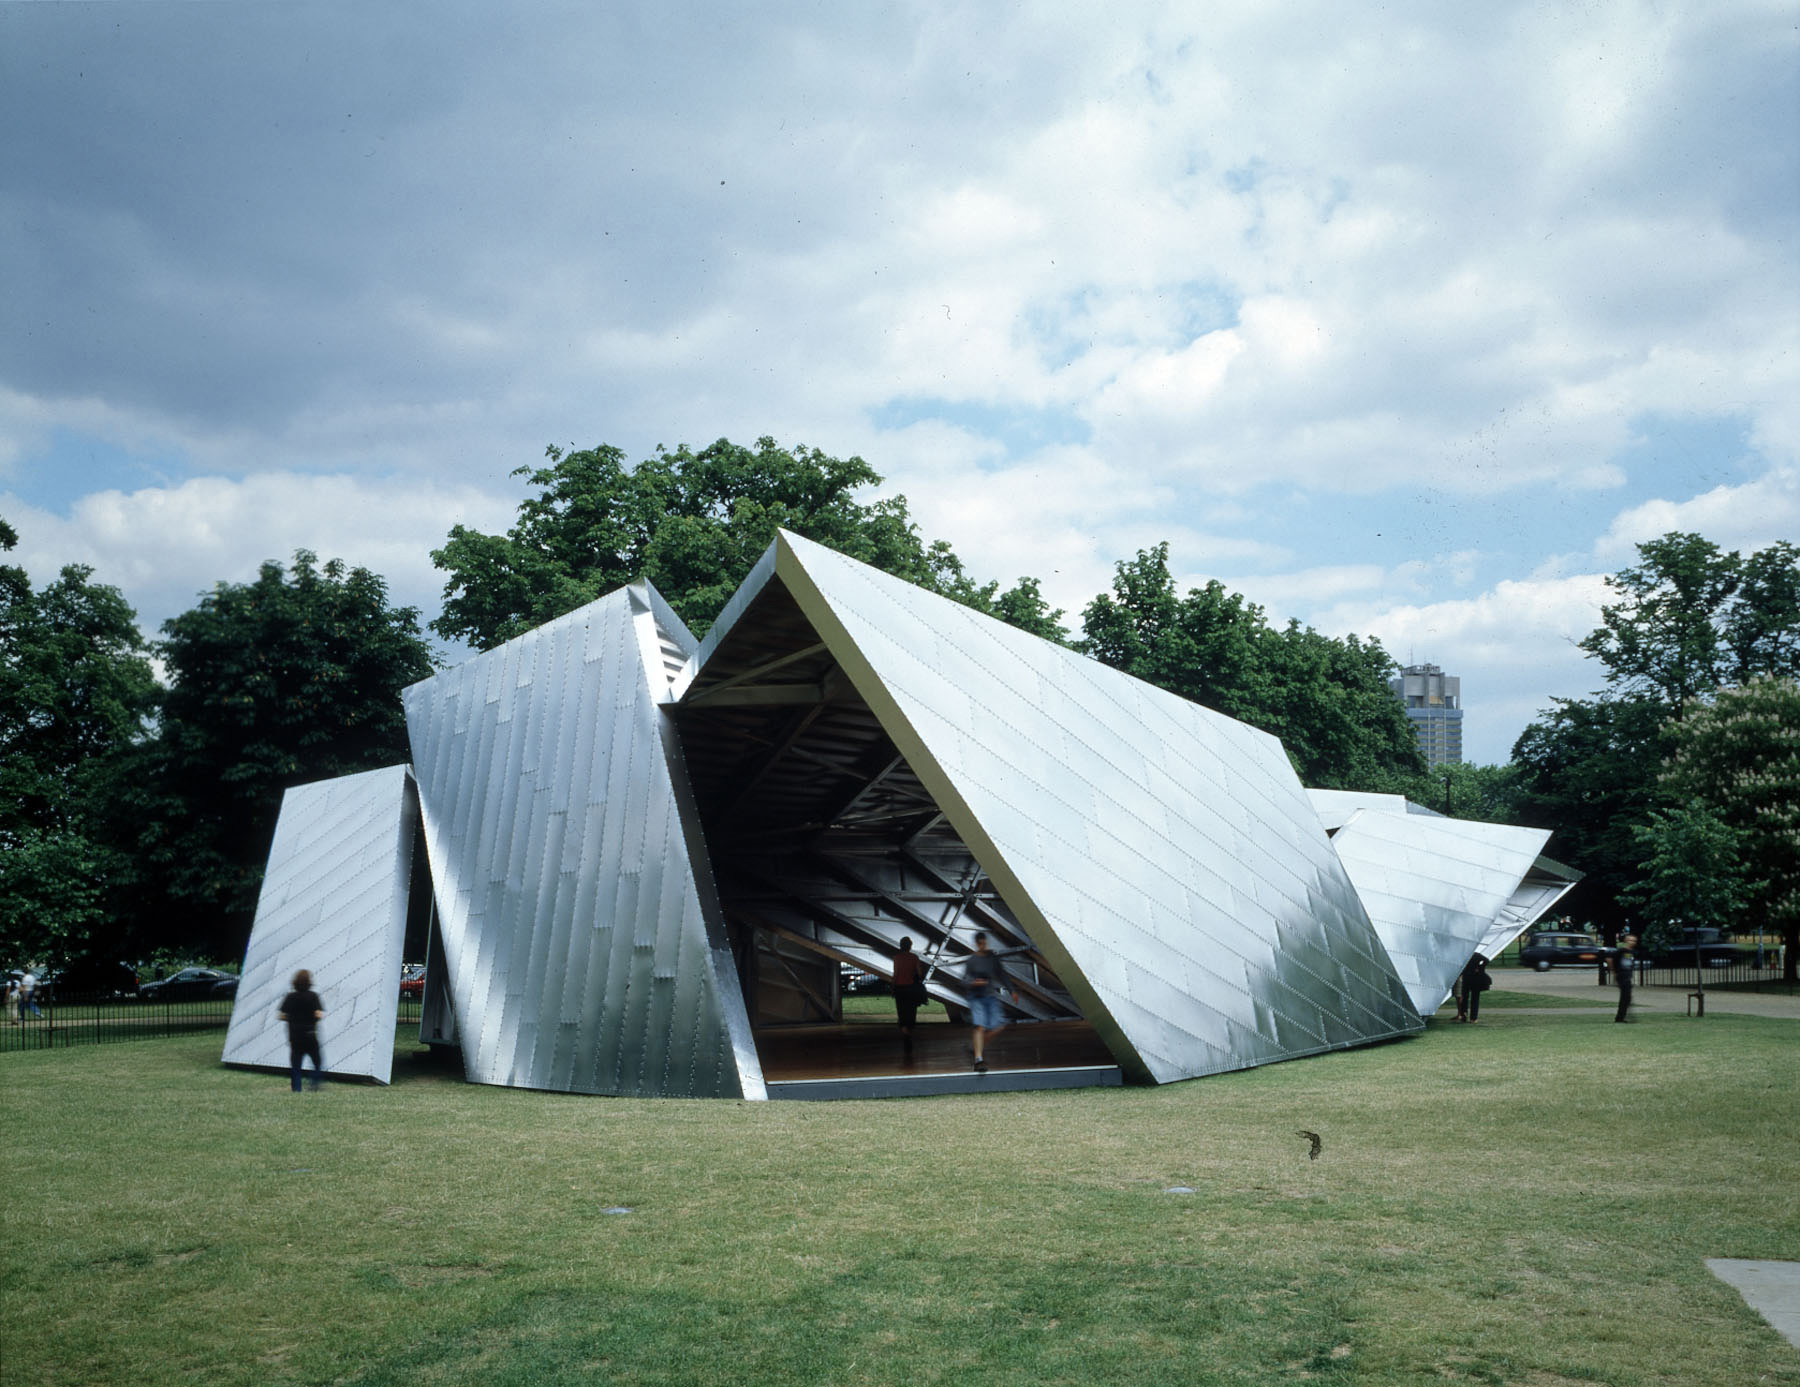 Image 3 of 34 | Serpentine Gallery Pavilion 2001 by Daniel Libeskind